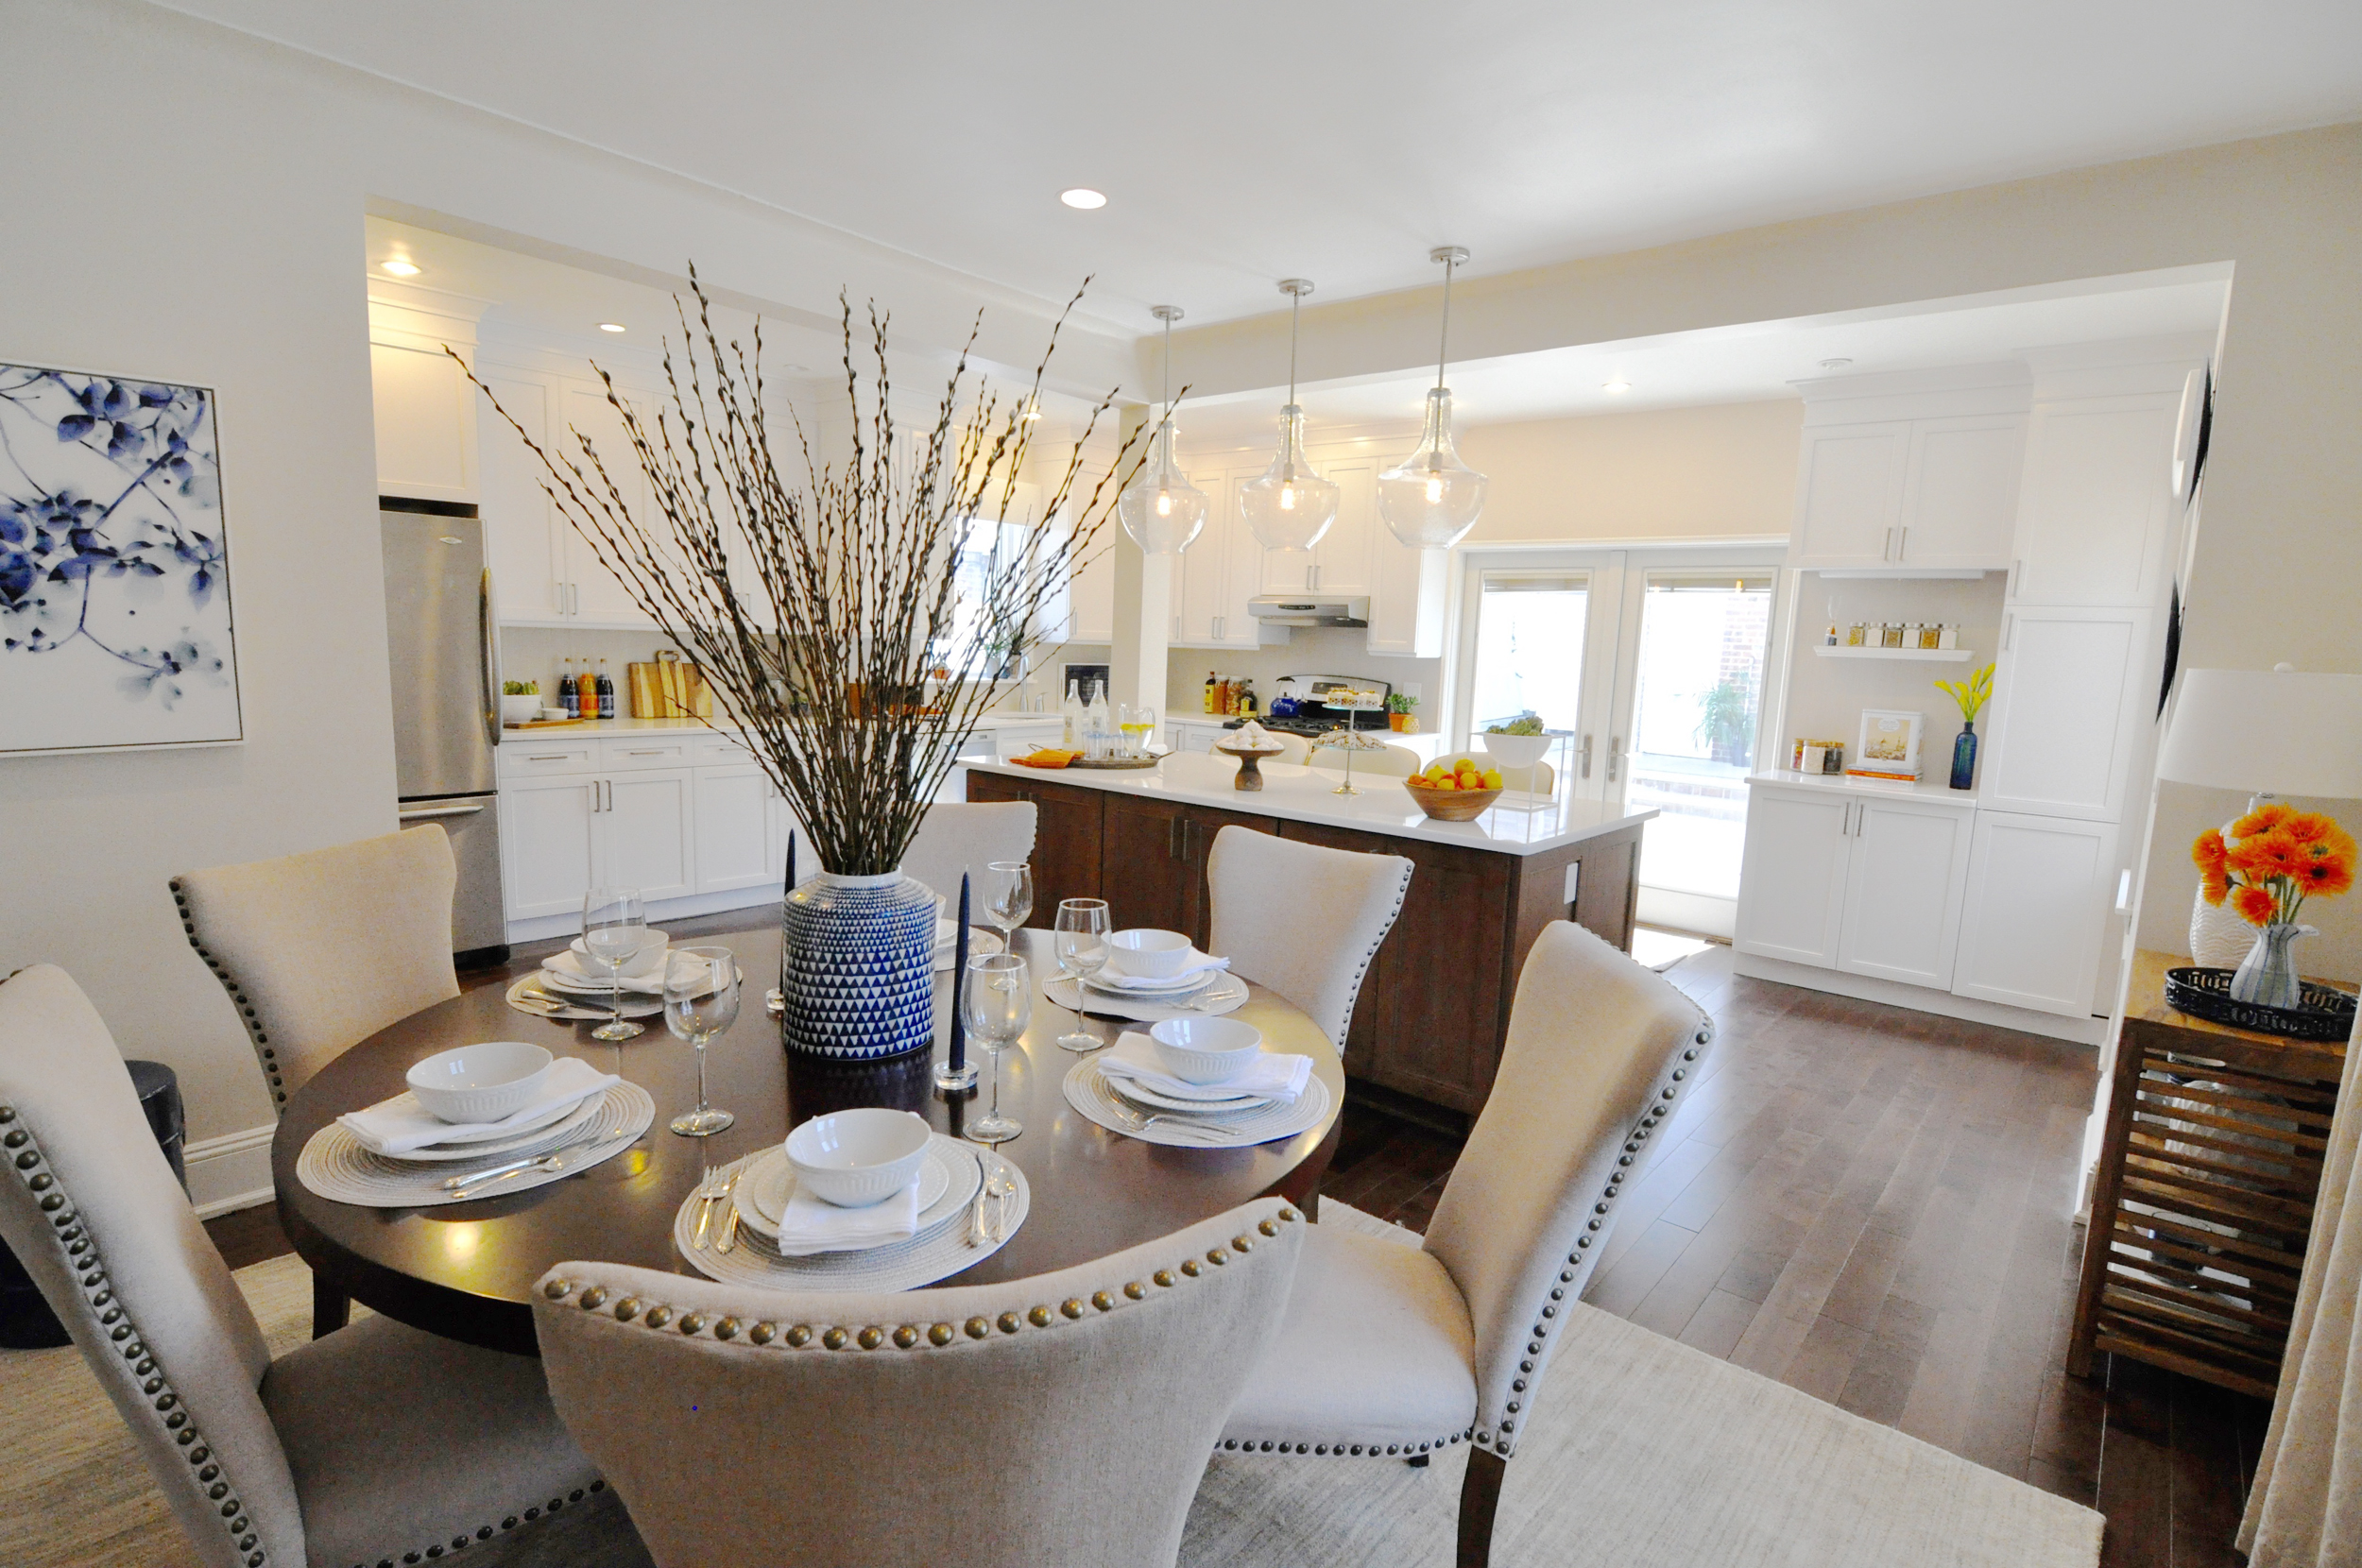 Kim Mitchell Production Designer_HGTV_Buying and Selling with The Property Brothers_Season 3 _Episode 315_Dining Room Remodel_Round Dining Table_Kitchen with Peninsula.jpg